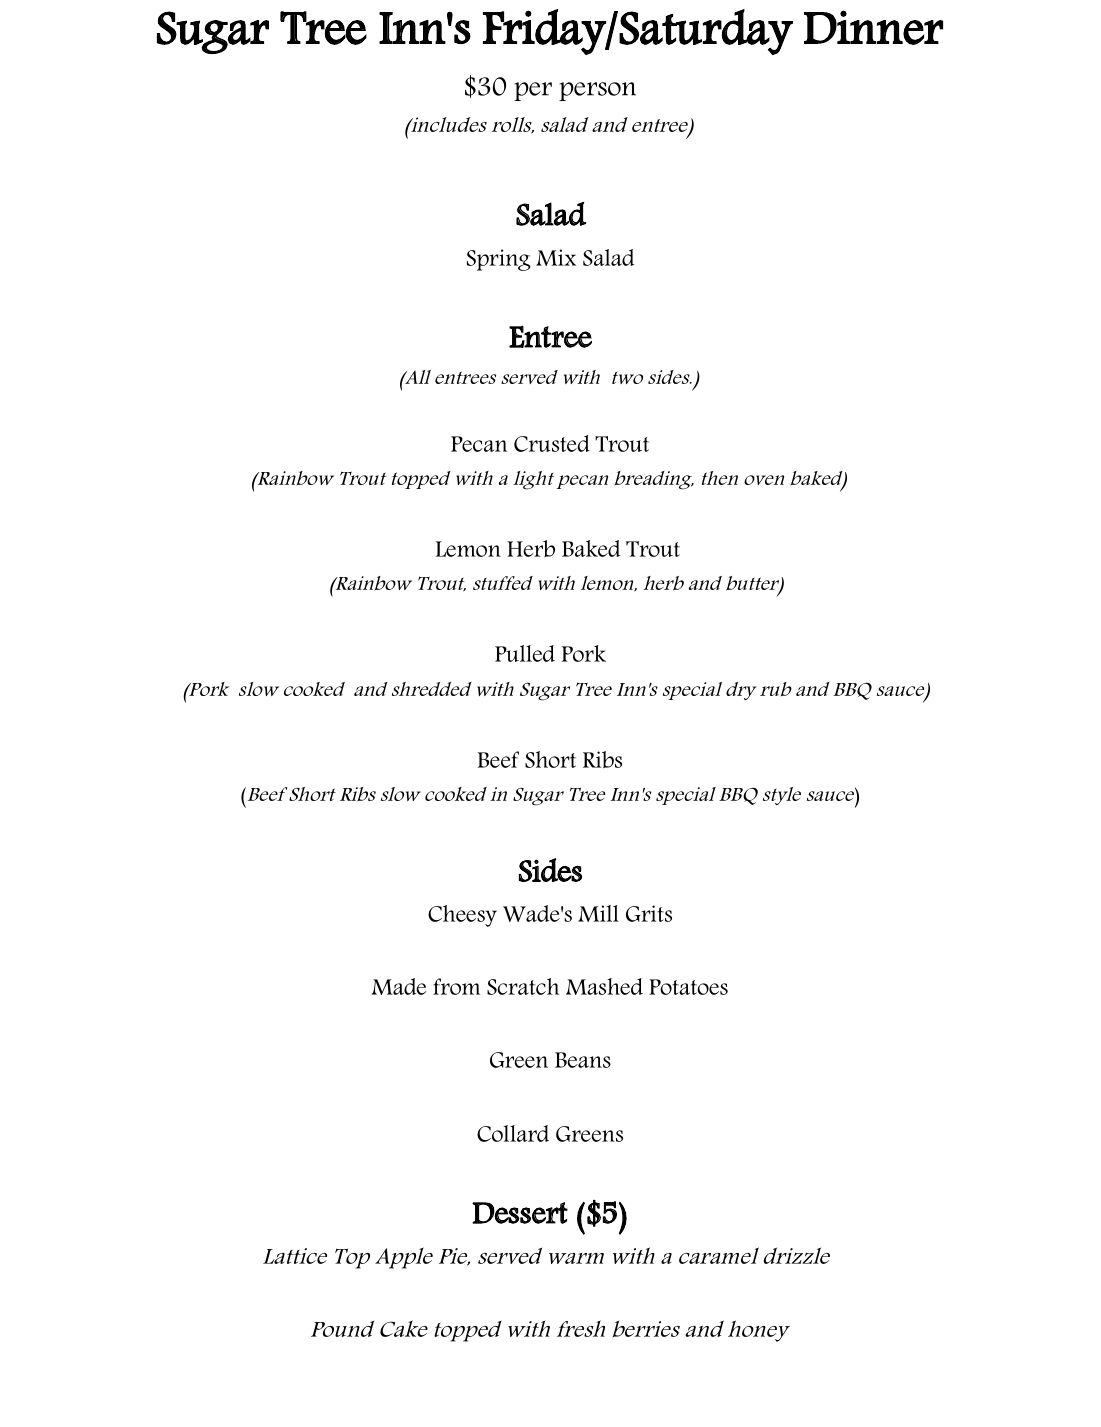 Sit Down dinner menu for Friday and Saturday nights